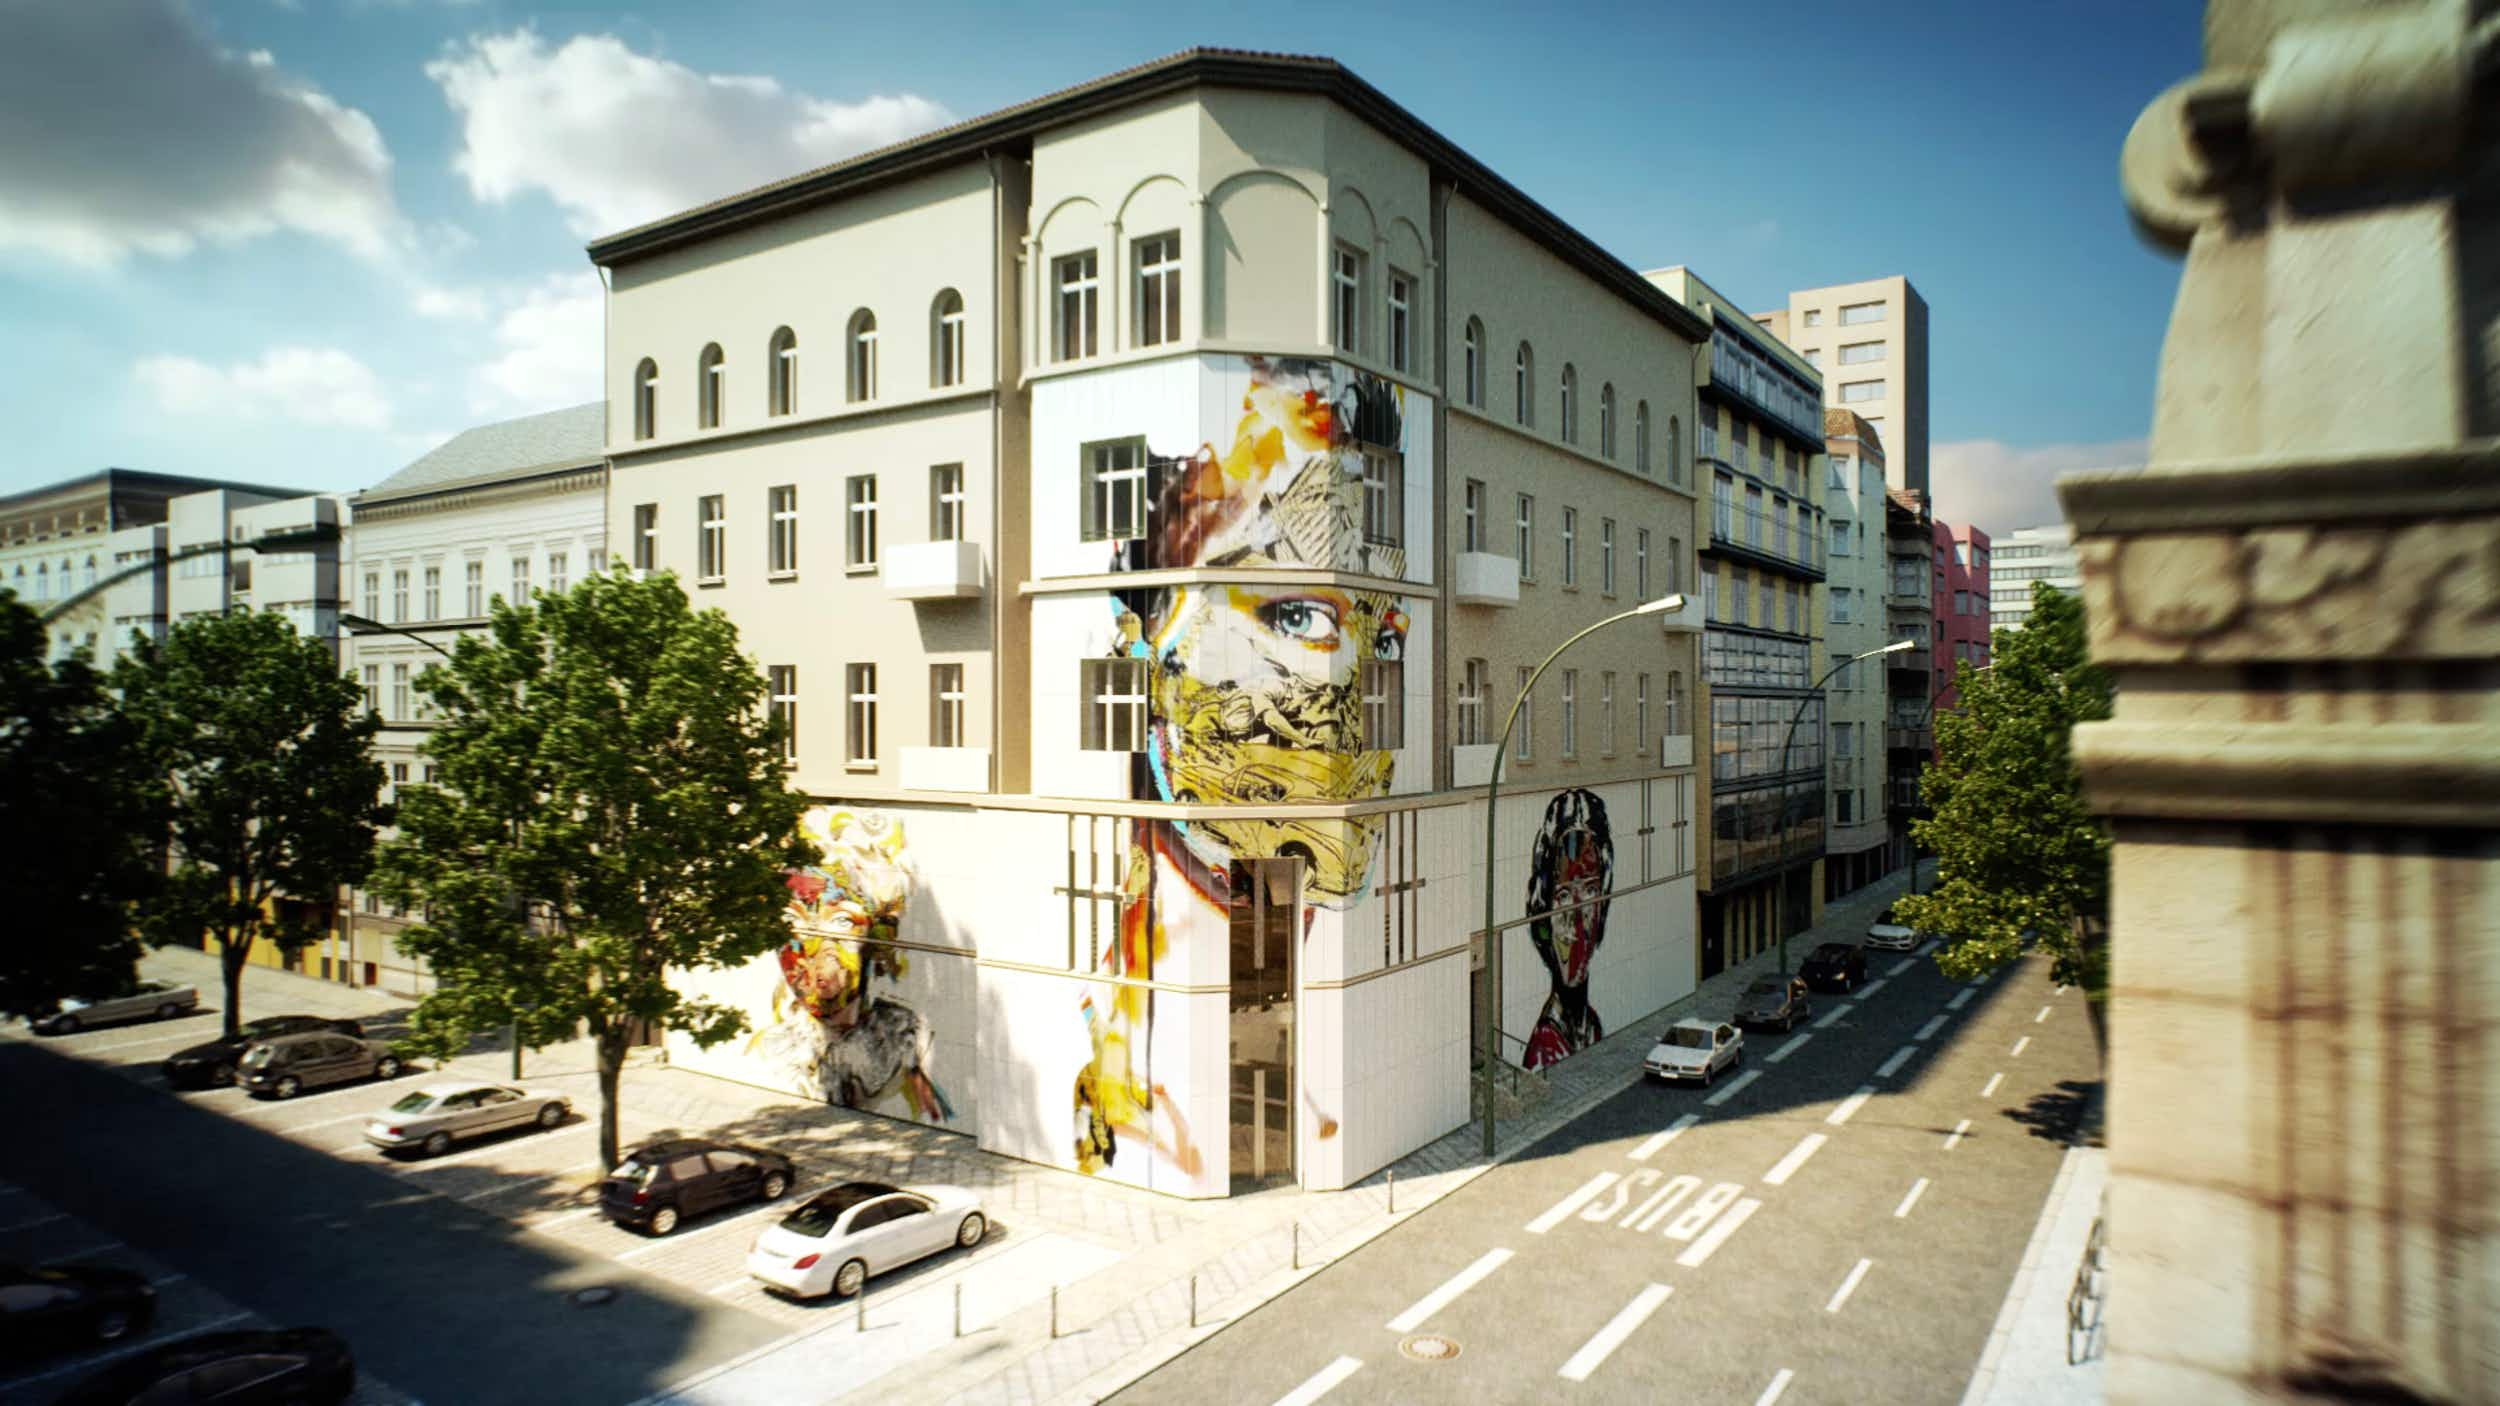 The world's largest street art museum is opening in Berlin this weekend